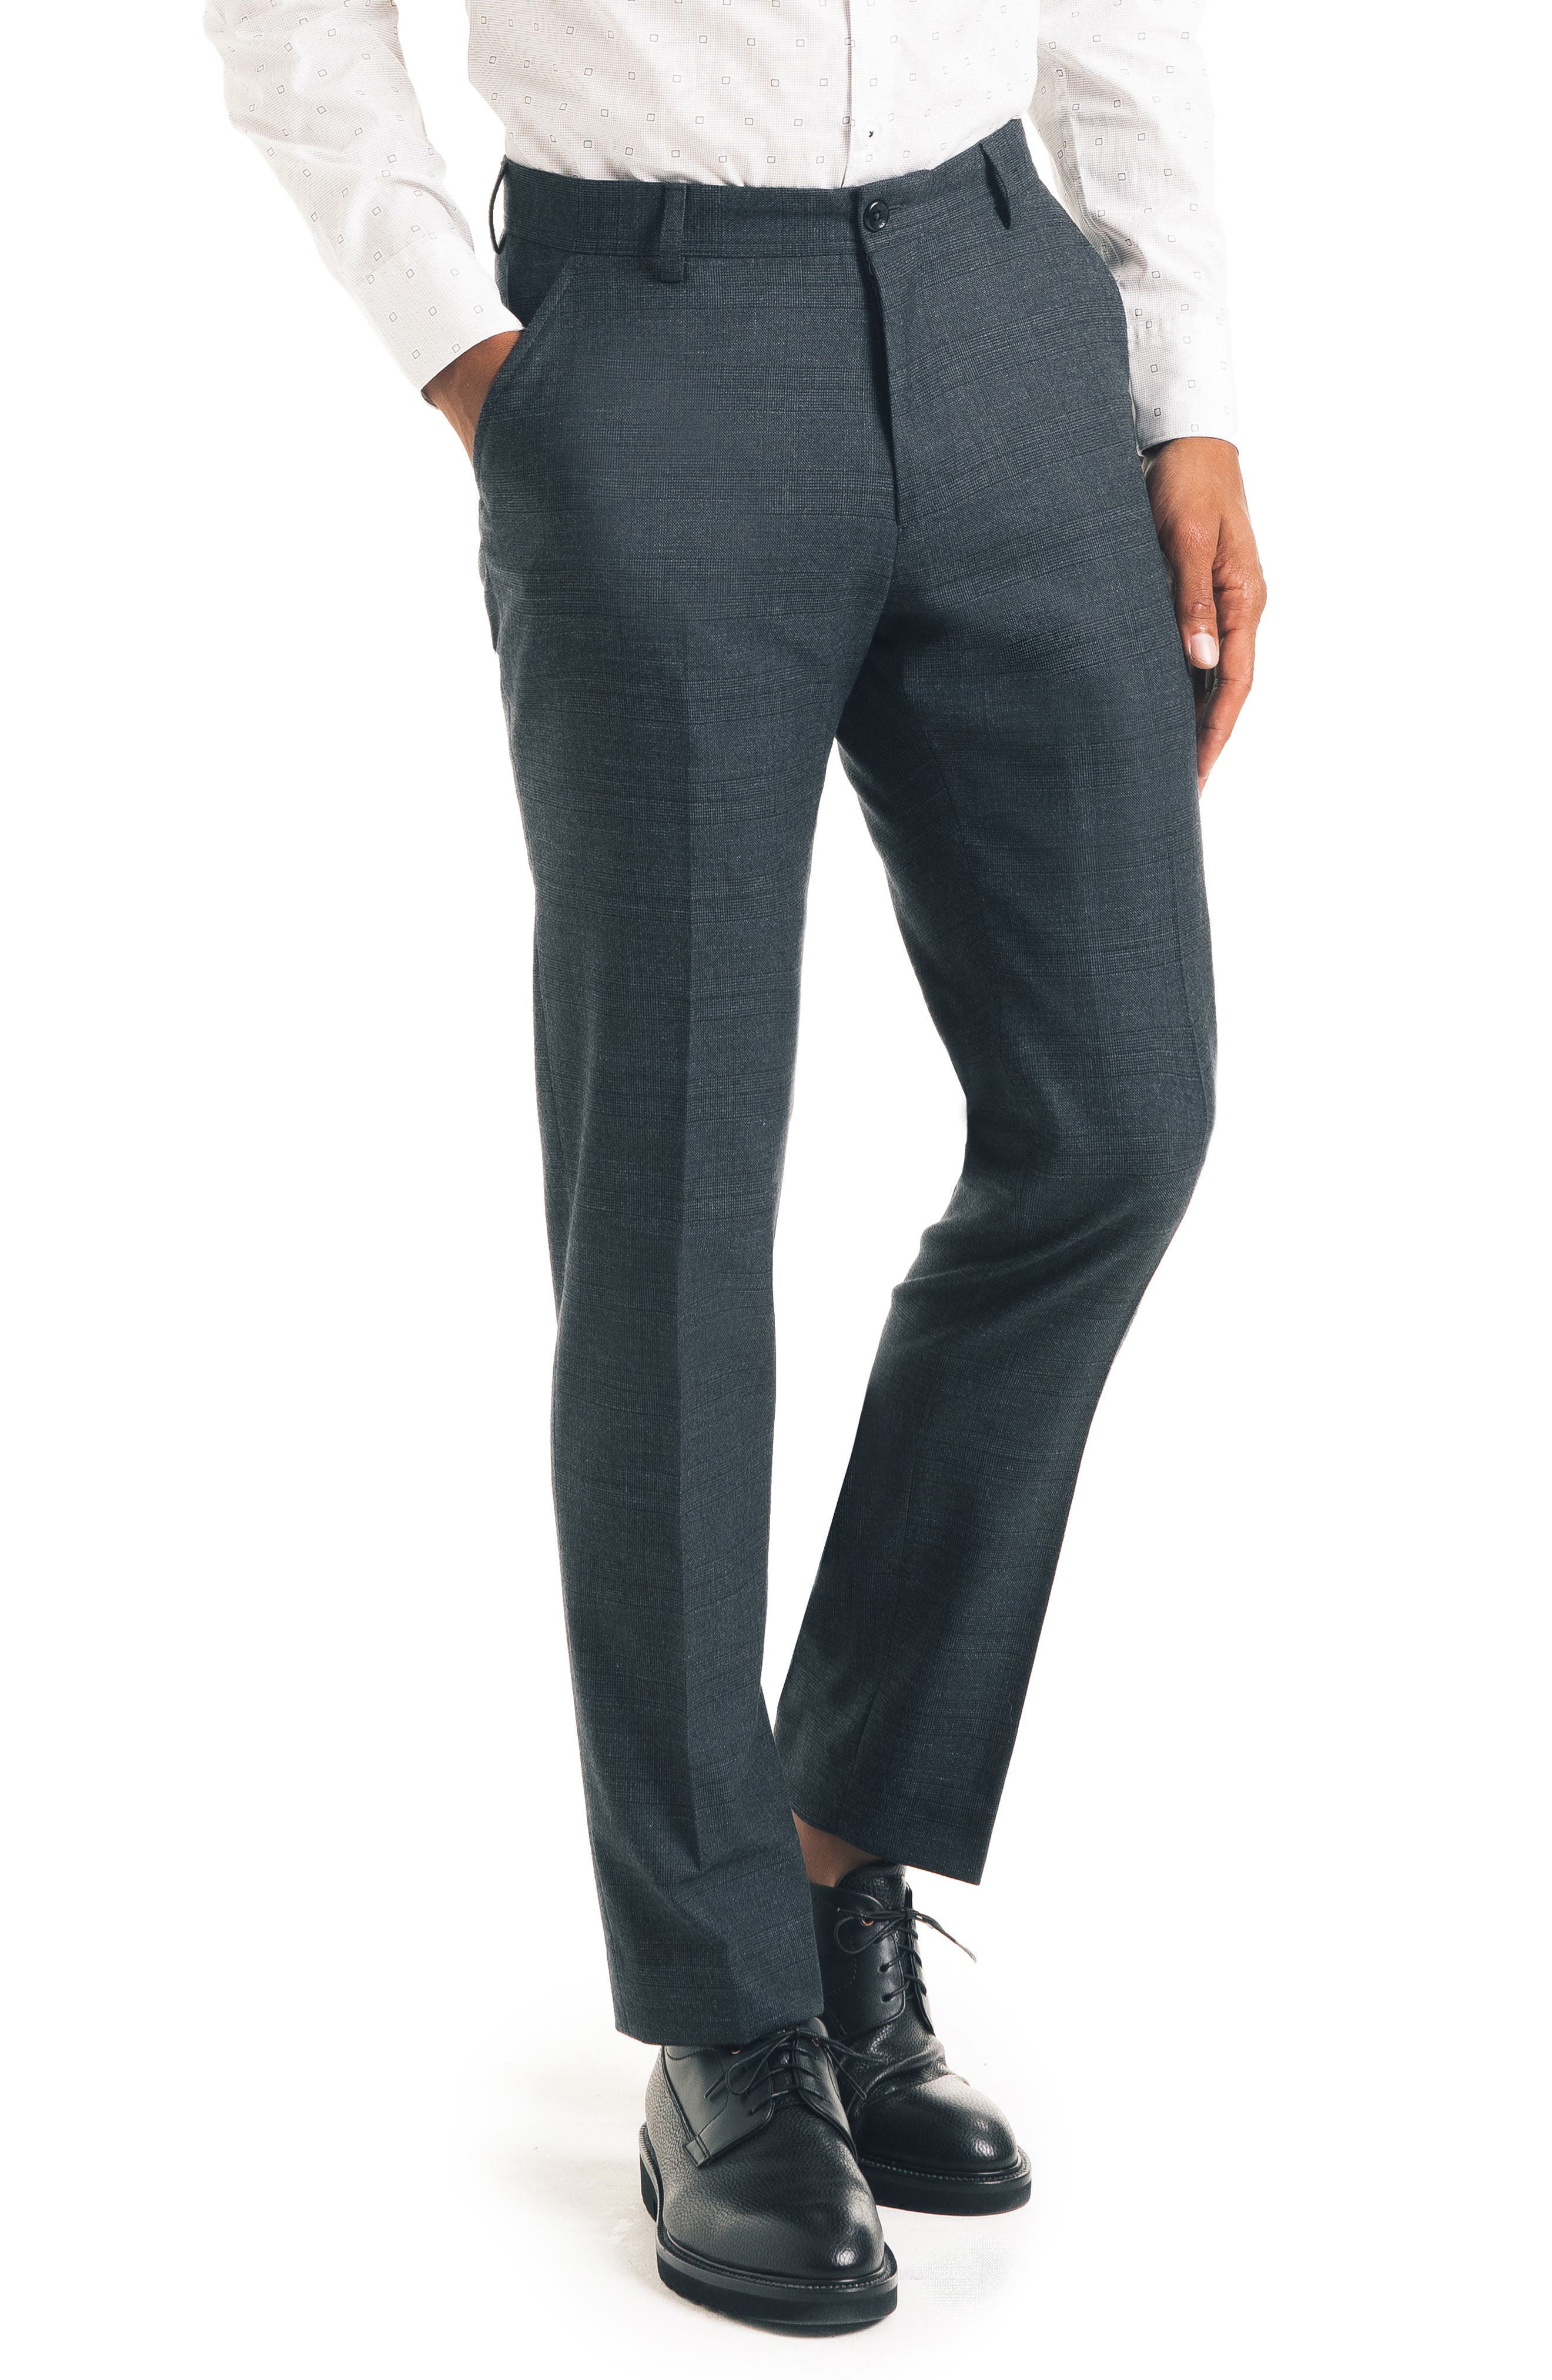 GOOD MAN BRAND Flat Front Stretch Wool Blend Trousers in Charcoal